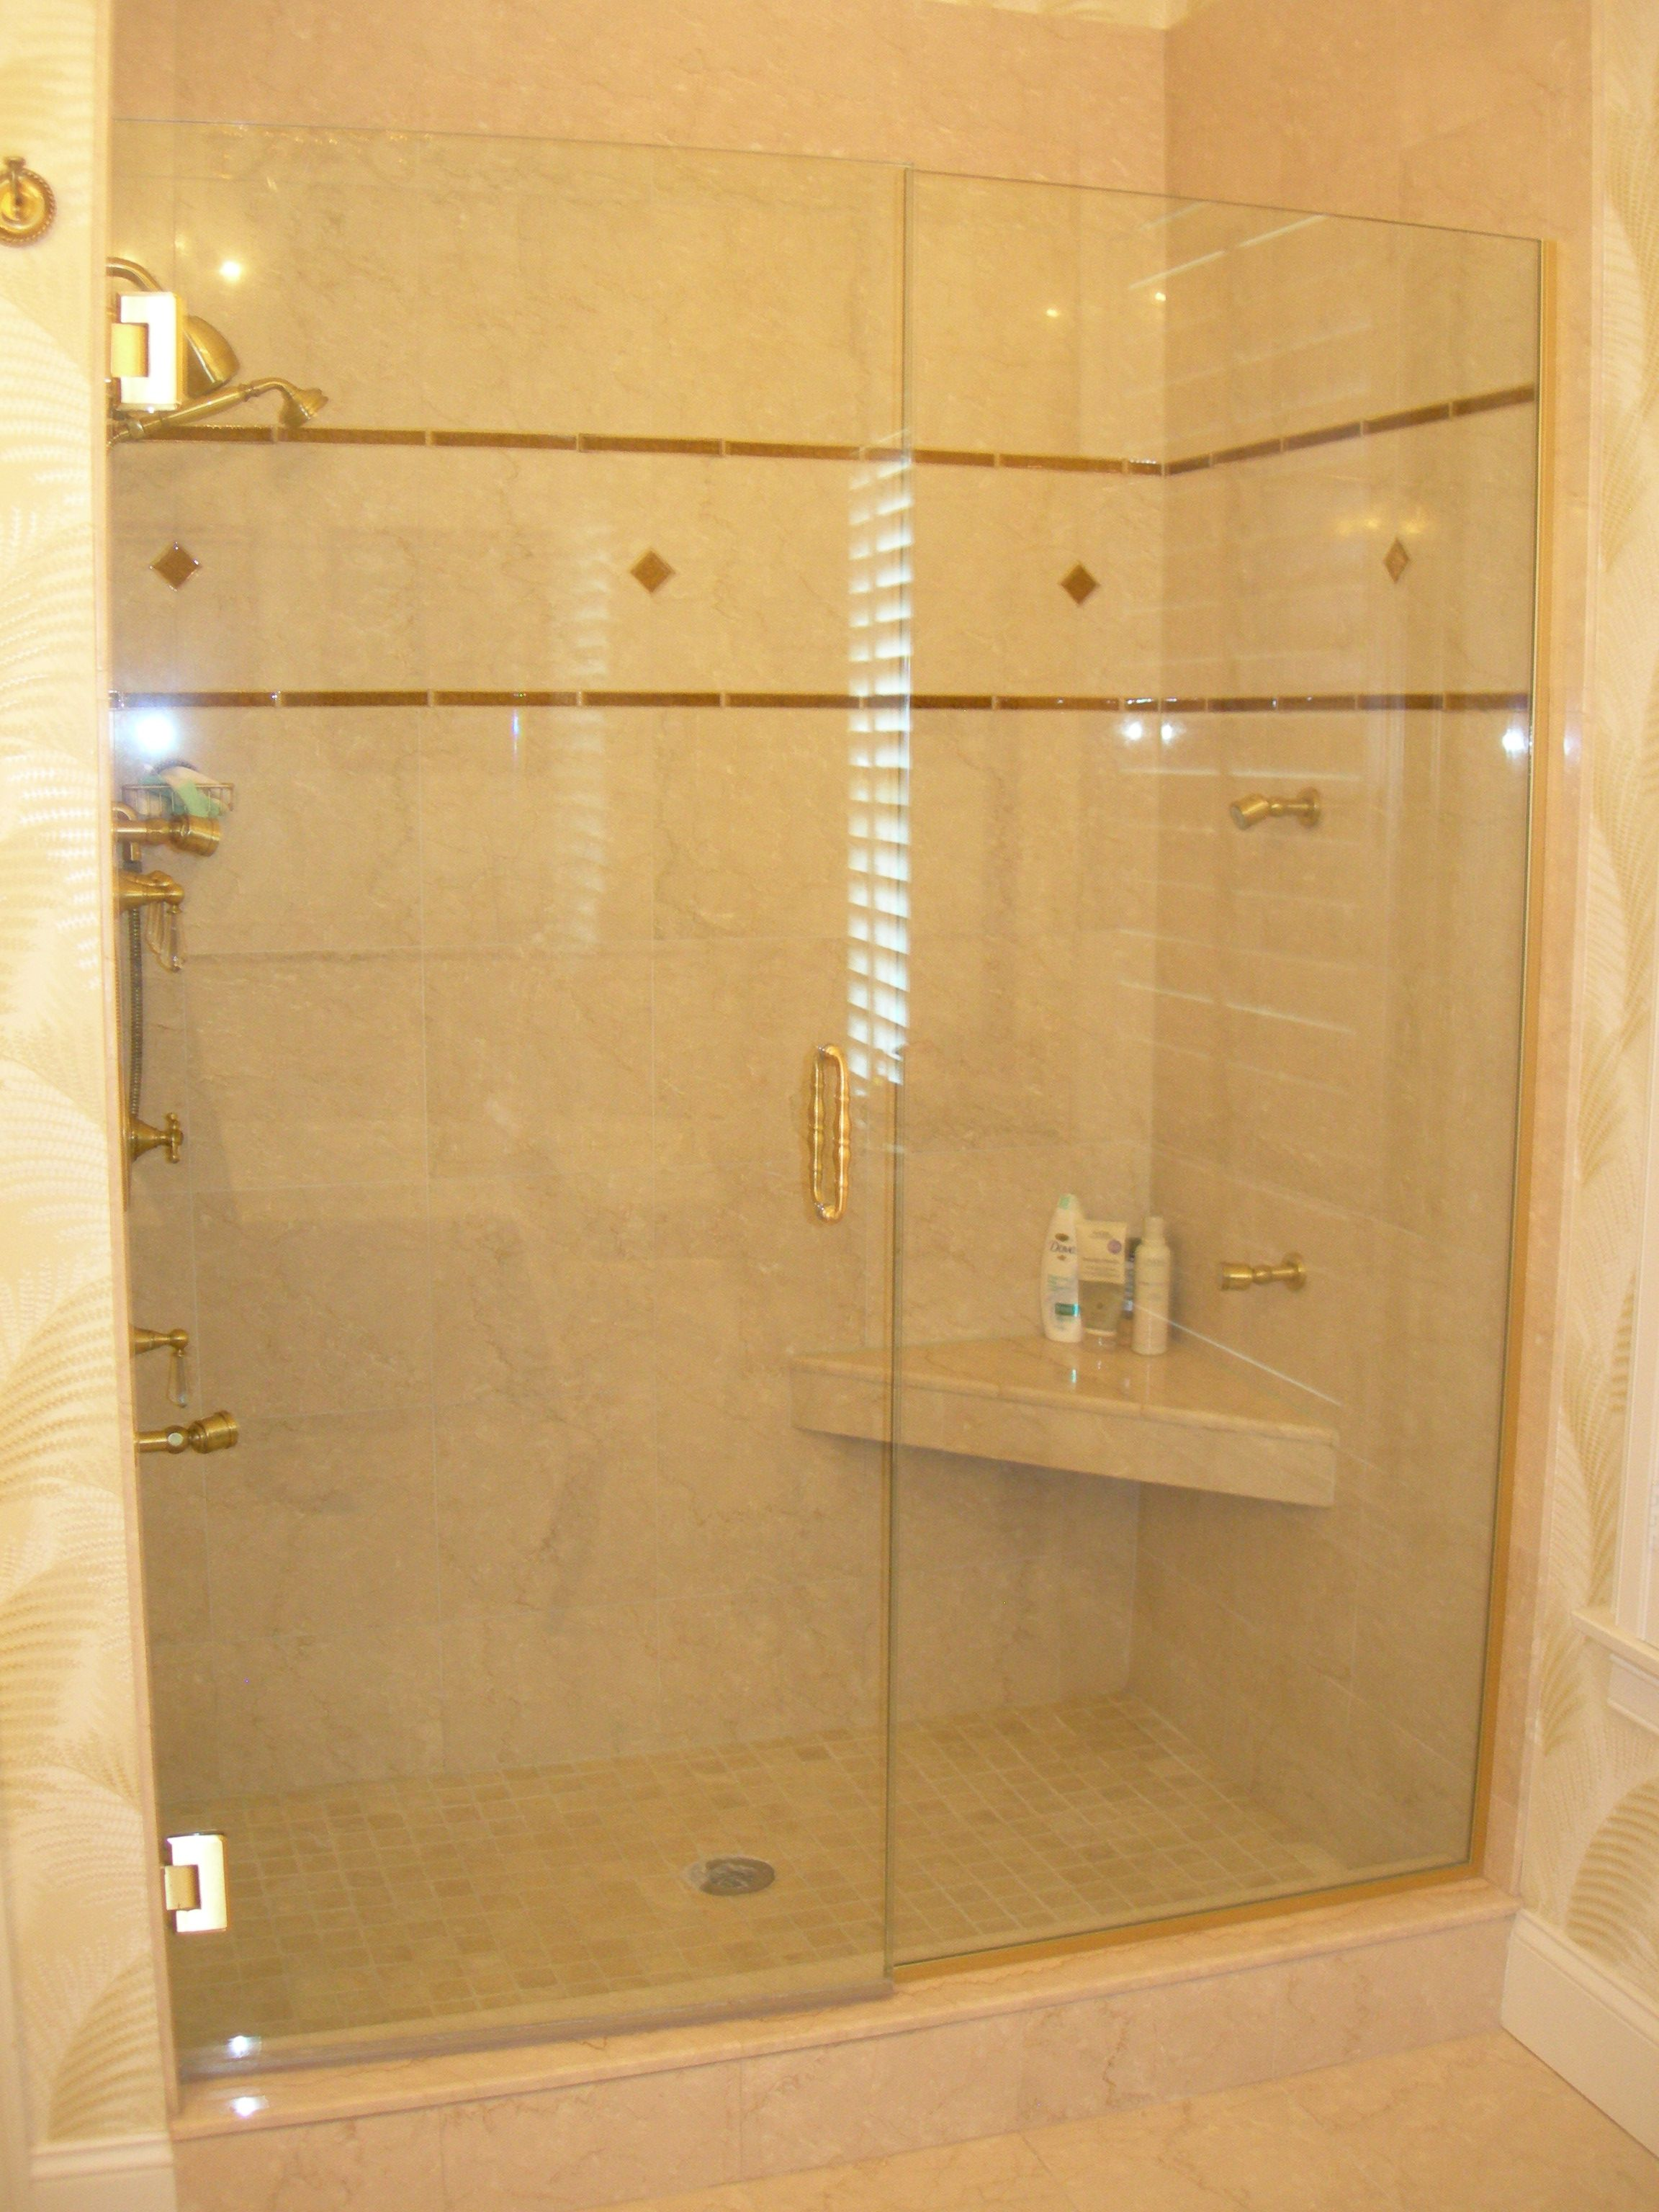 An Over Sized Shower Stall With A Corner Seat And Marble And Glass